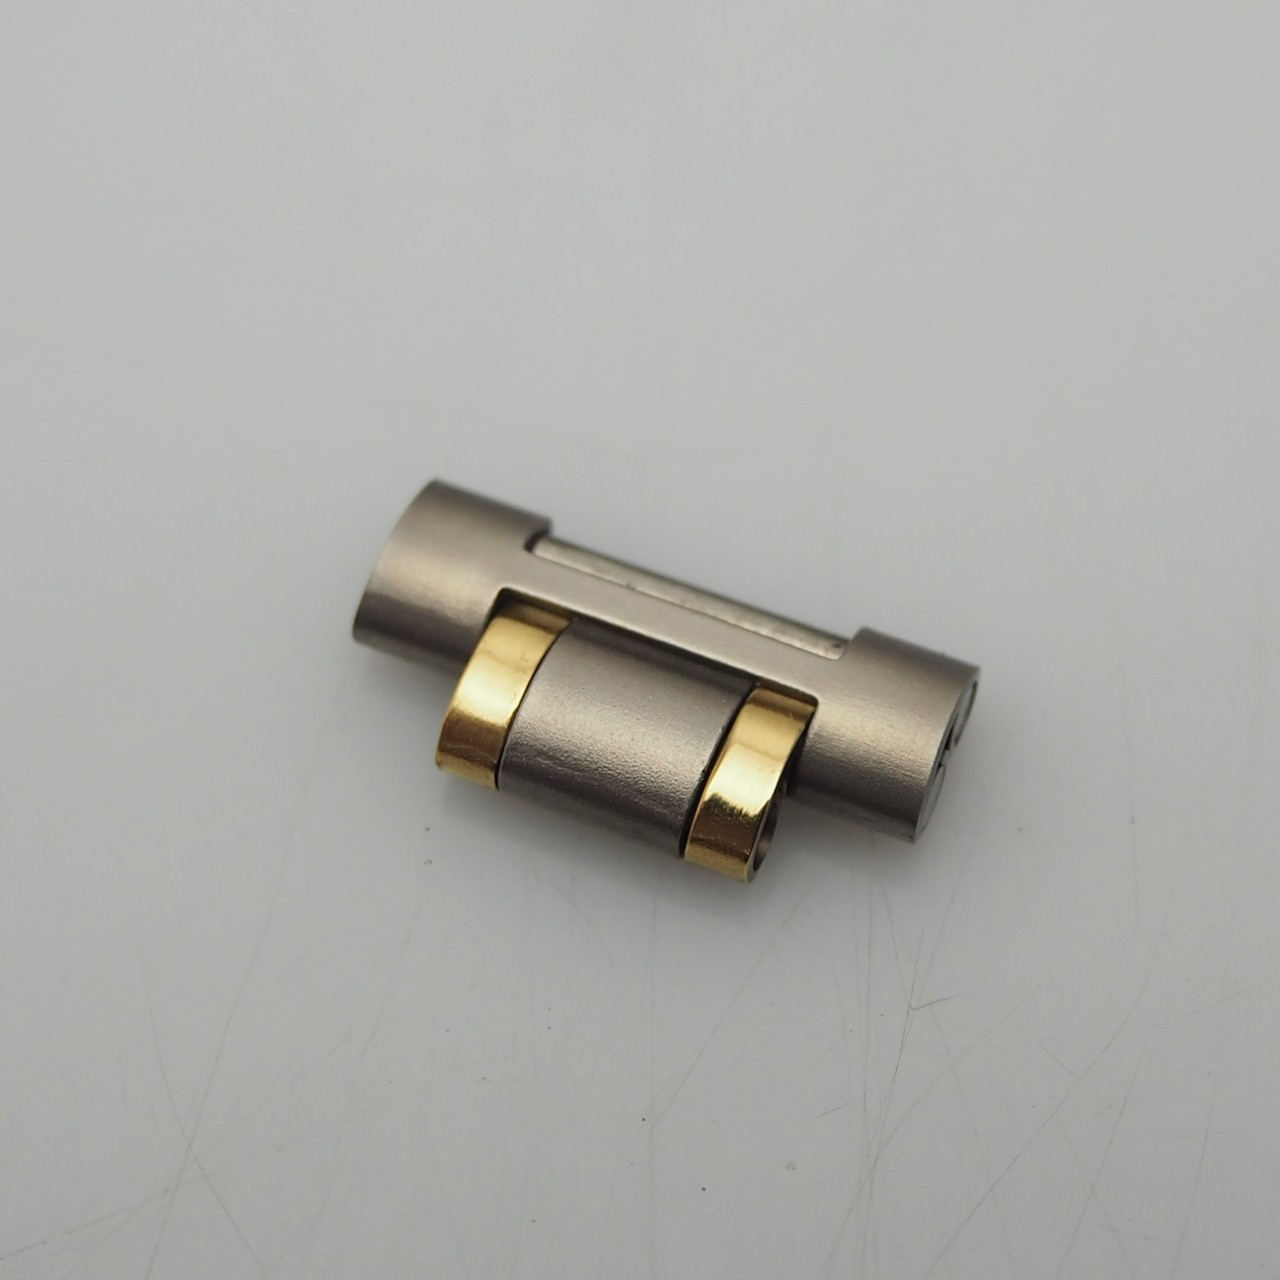 Zenith Bandelement/ Glied/ Titan-Gold 18mm